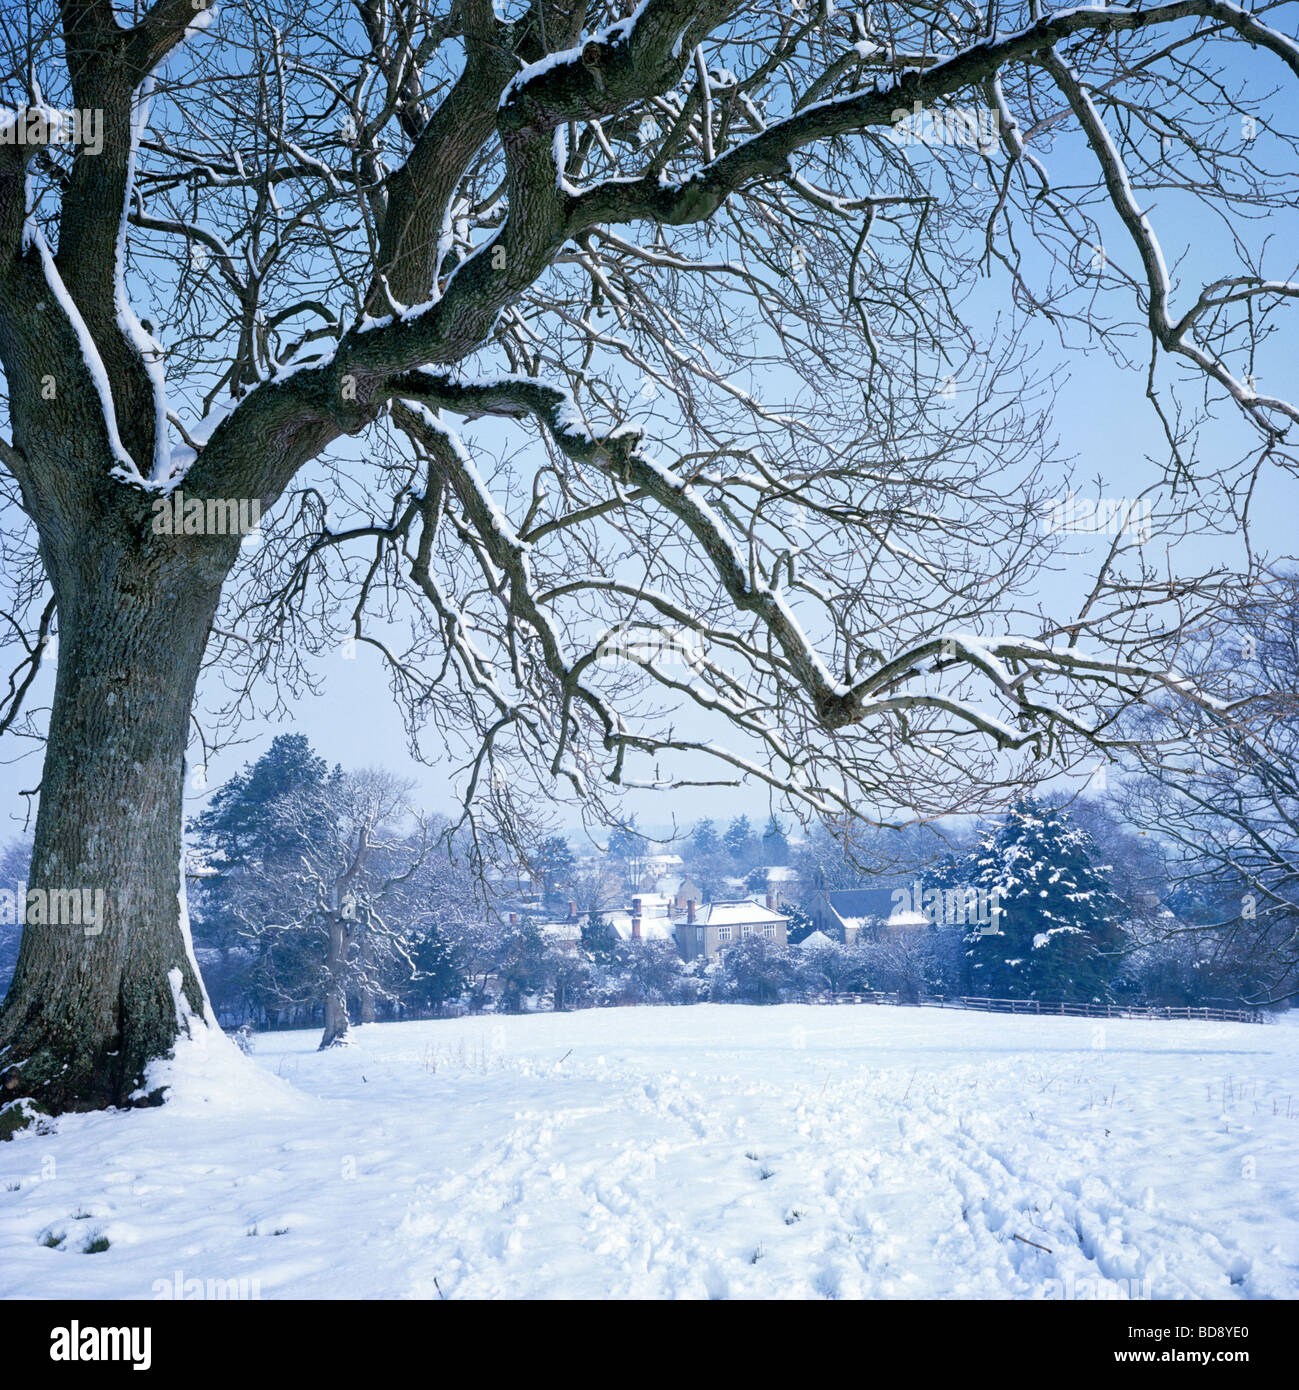 Snow covered rural scene at Misterton near Crewkerne Stock Photo